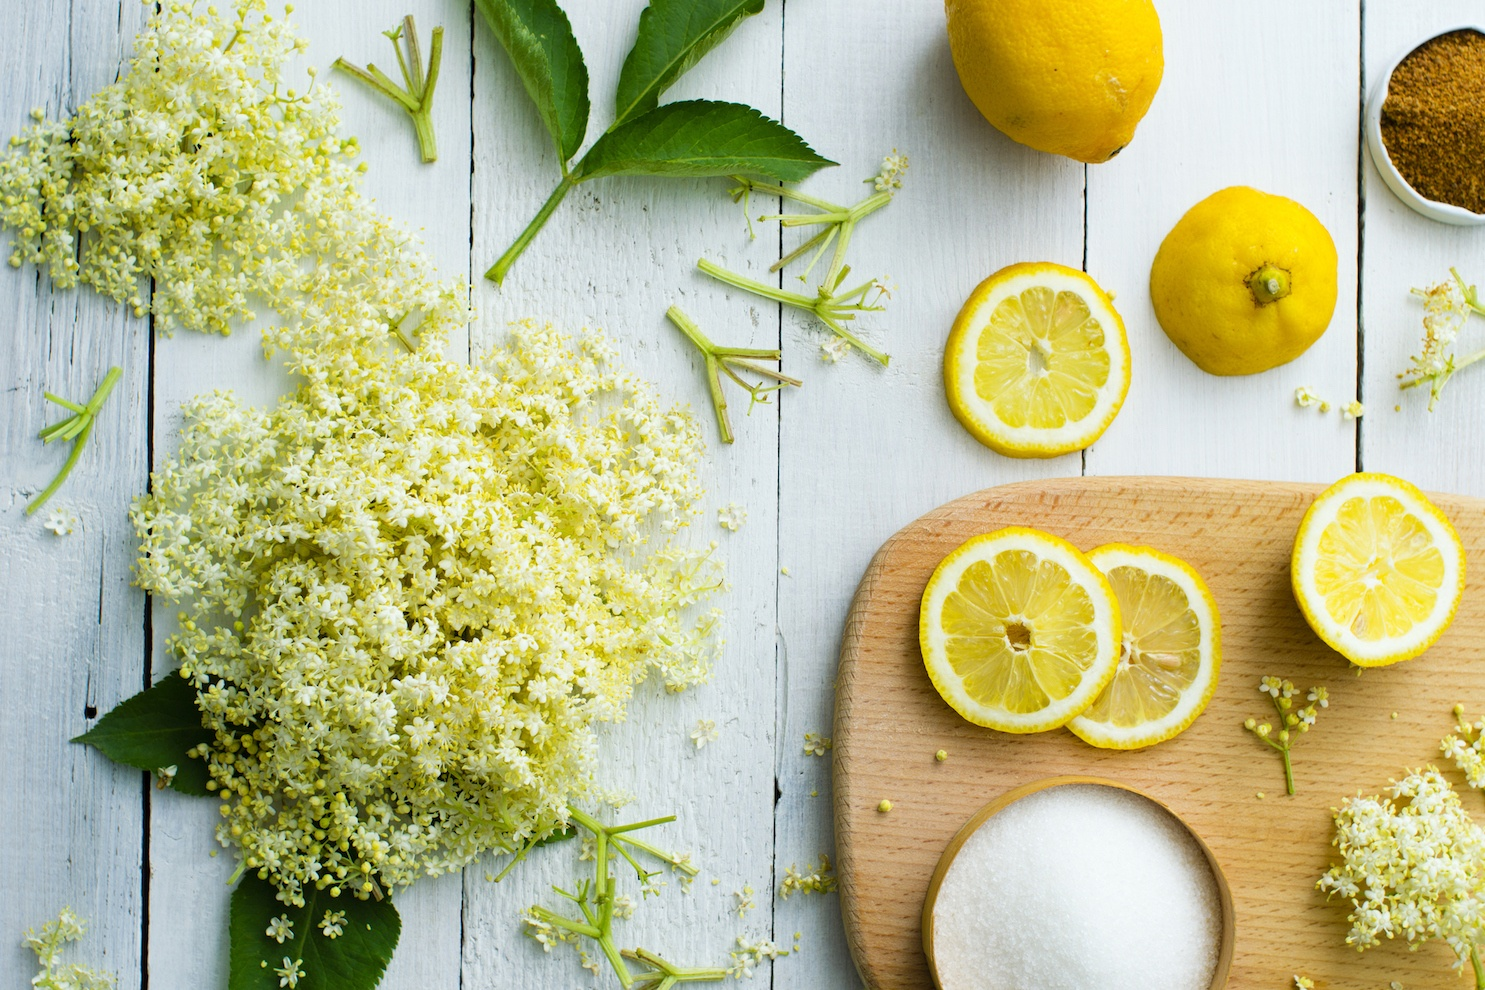 Elderflower and lemons on a white wood background